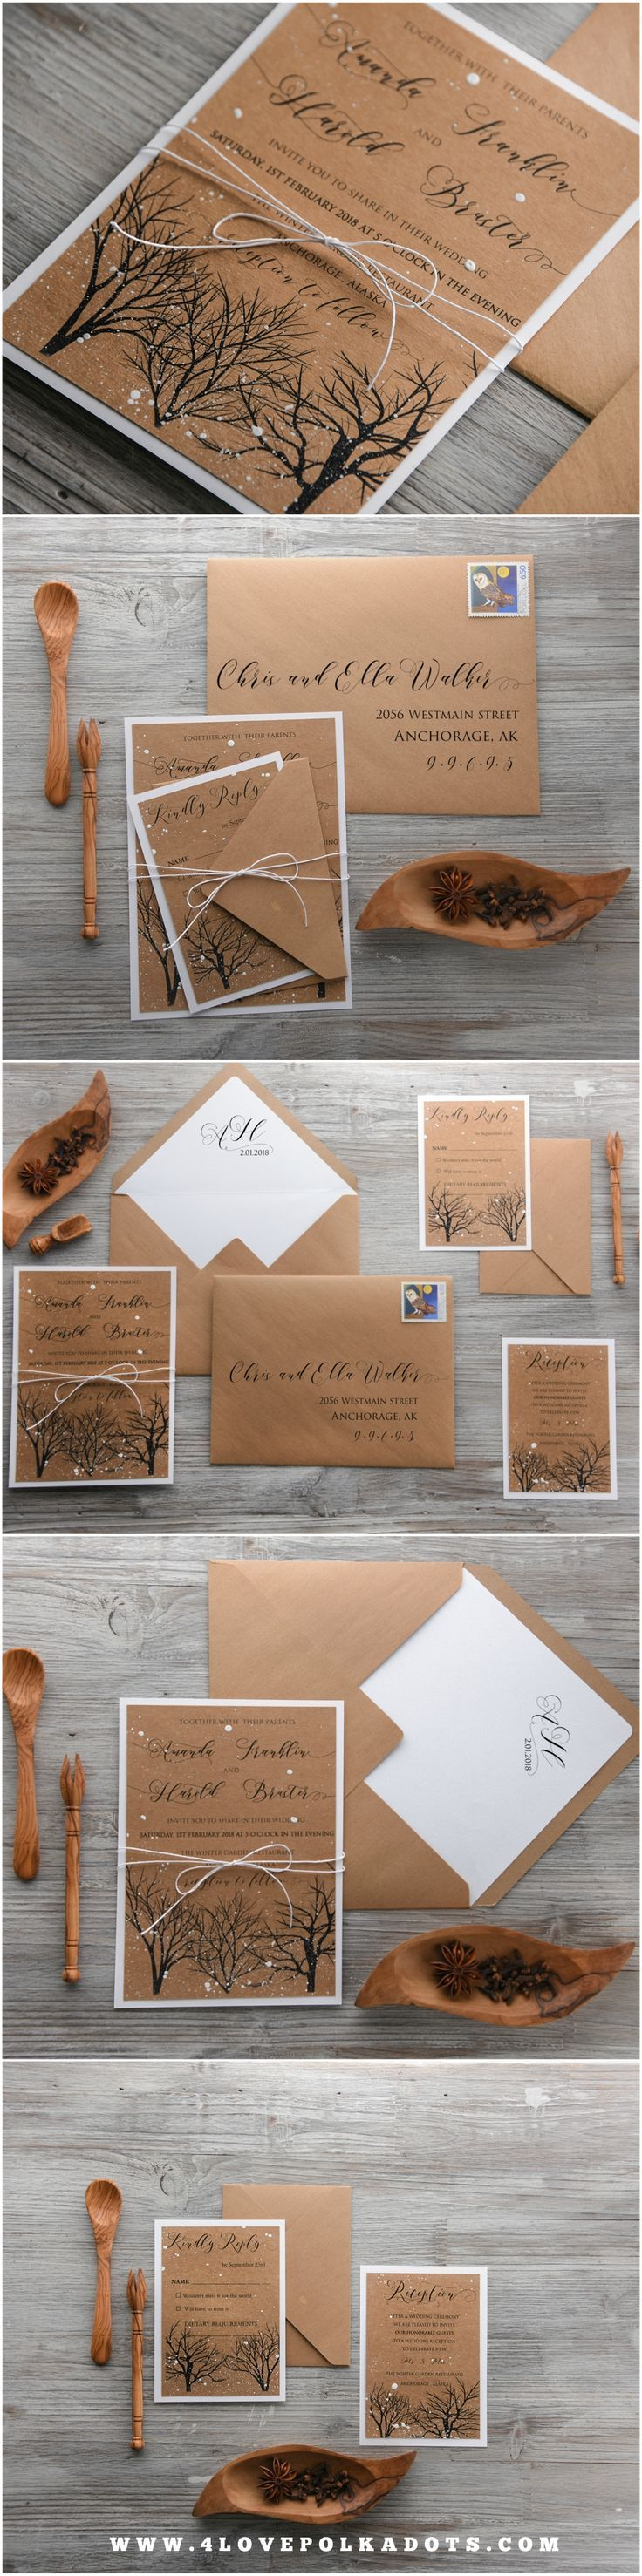 Invitations - Not this...but something like this with a combination ...